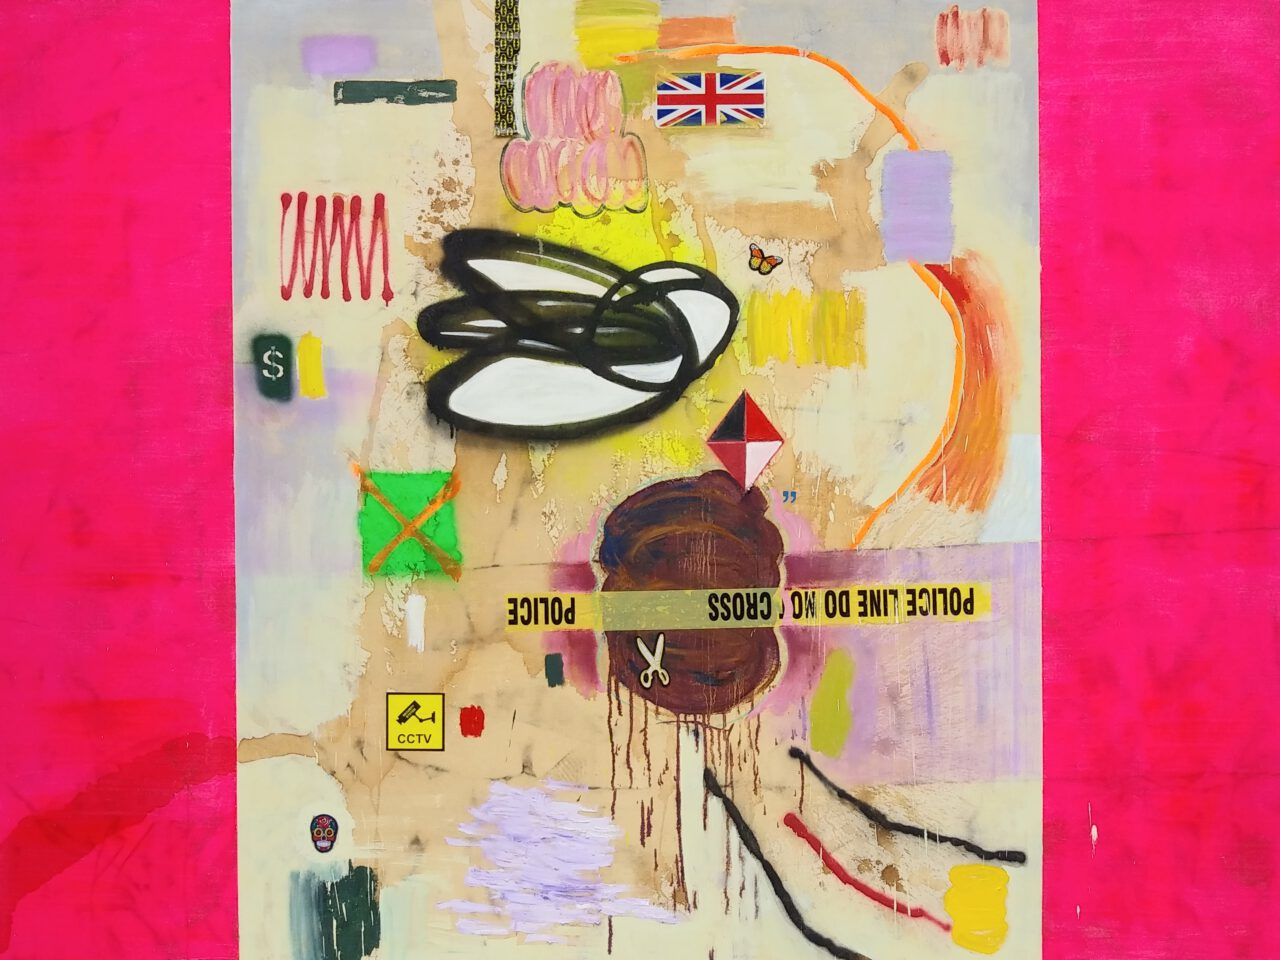 MiT#134 (Instrumentum Regni - pink). 2020. oil, acrylic, spray paint, tea, coffee, wine, motor oil, rubber, marker pen, patch, sticker, leather glove, denim, plastic tape, metal ornament skull, security camera on canvas. 72 x 96 inches